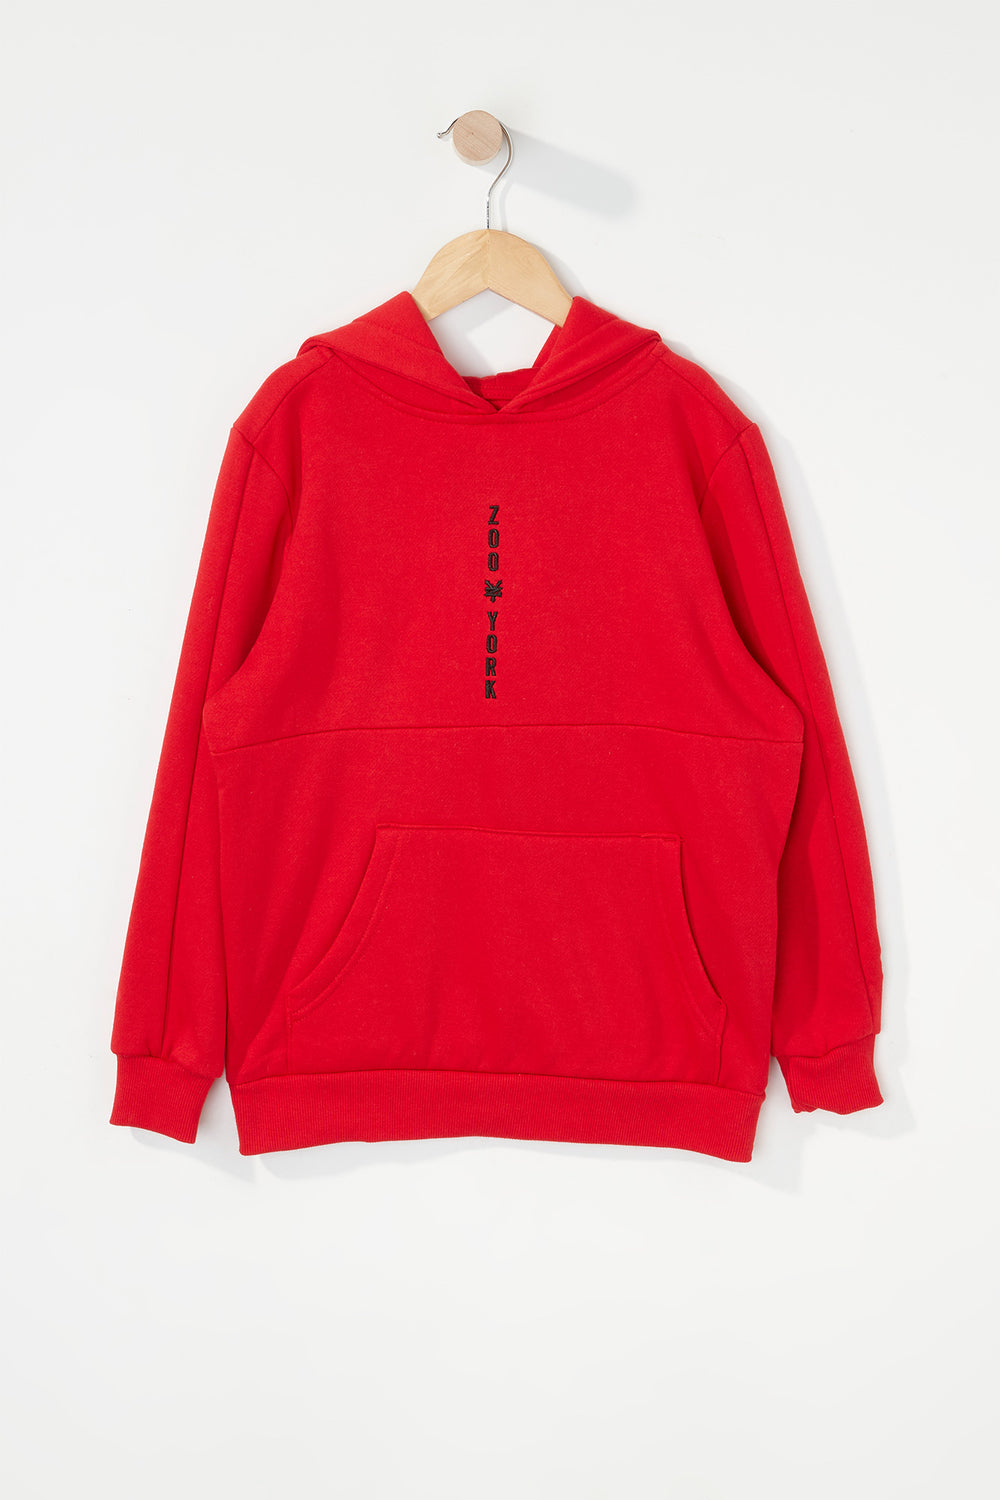 Zoo York Boys Embroidered Logo Hoodie Red